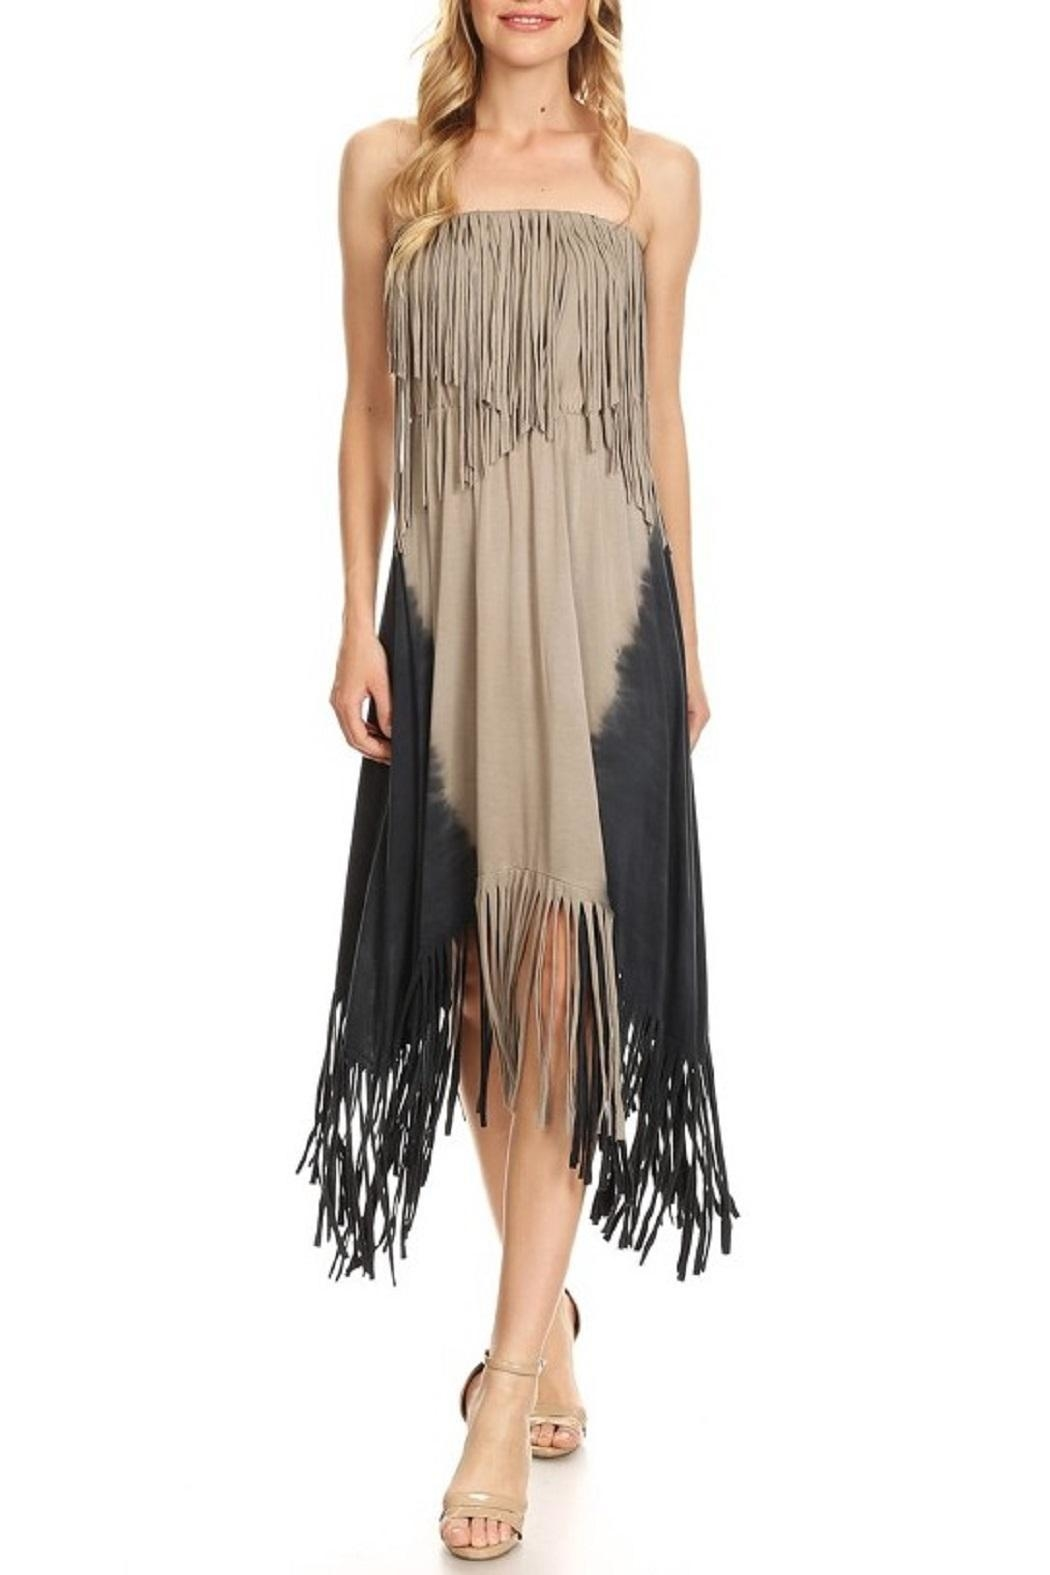 c3e699daf4f3 T-Party Fashion Frills   Fringes from Georgia by Posh Clothing ...